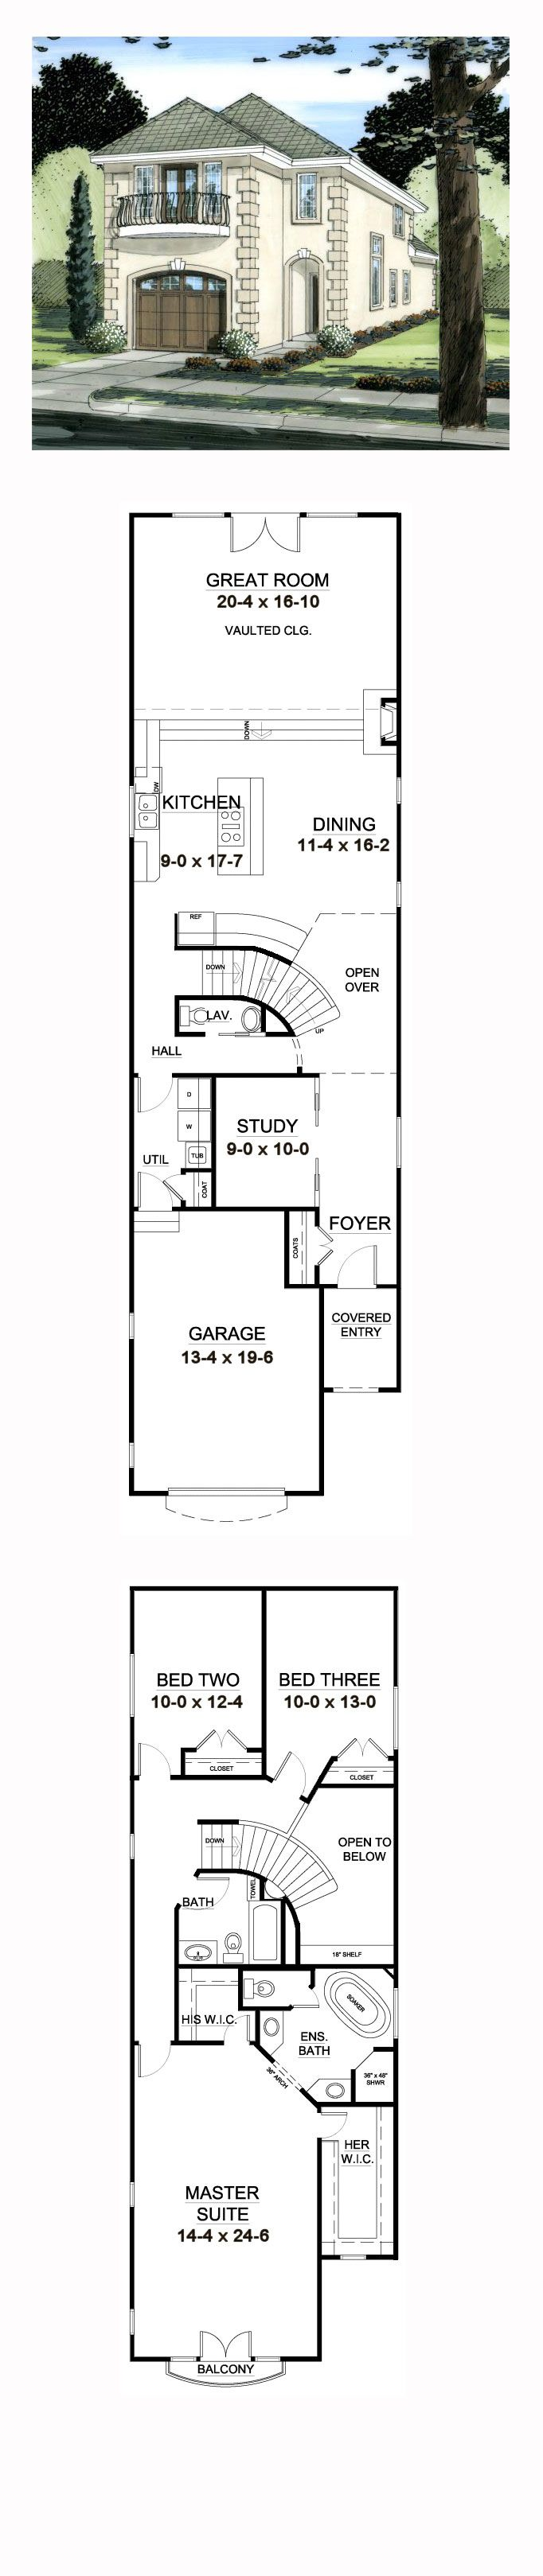 Florida House Plan 99997